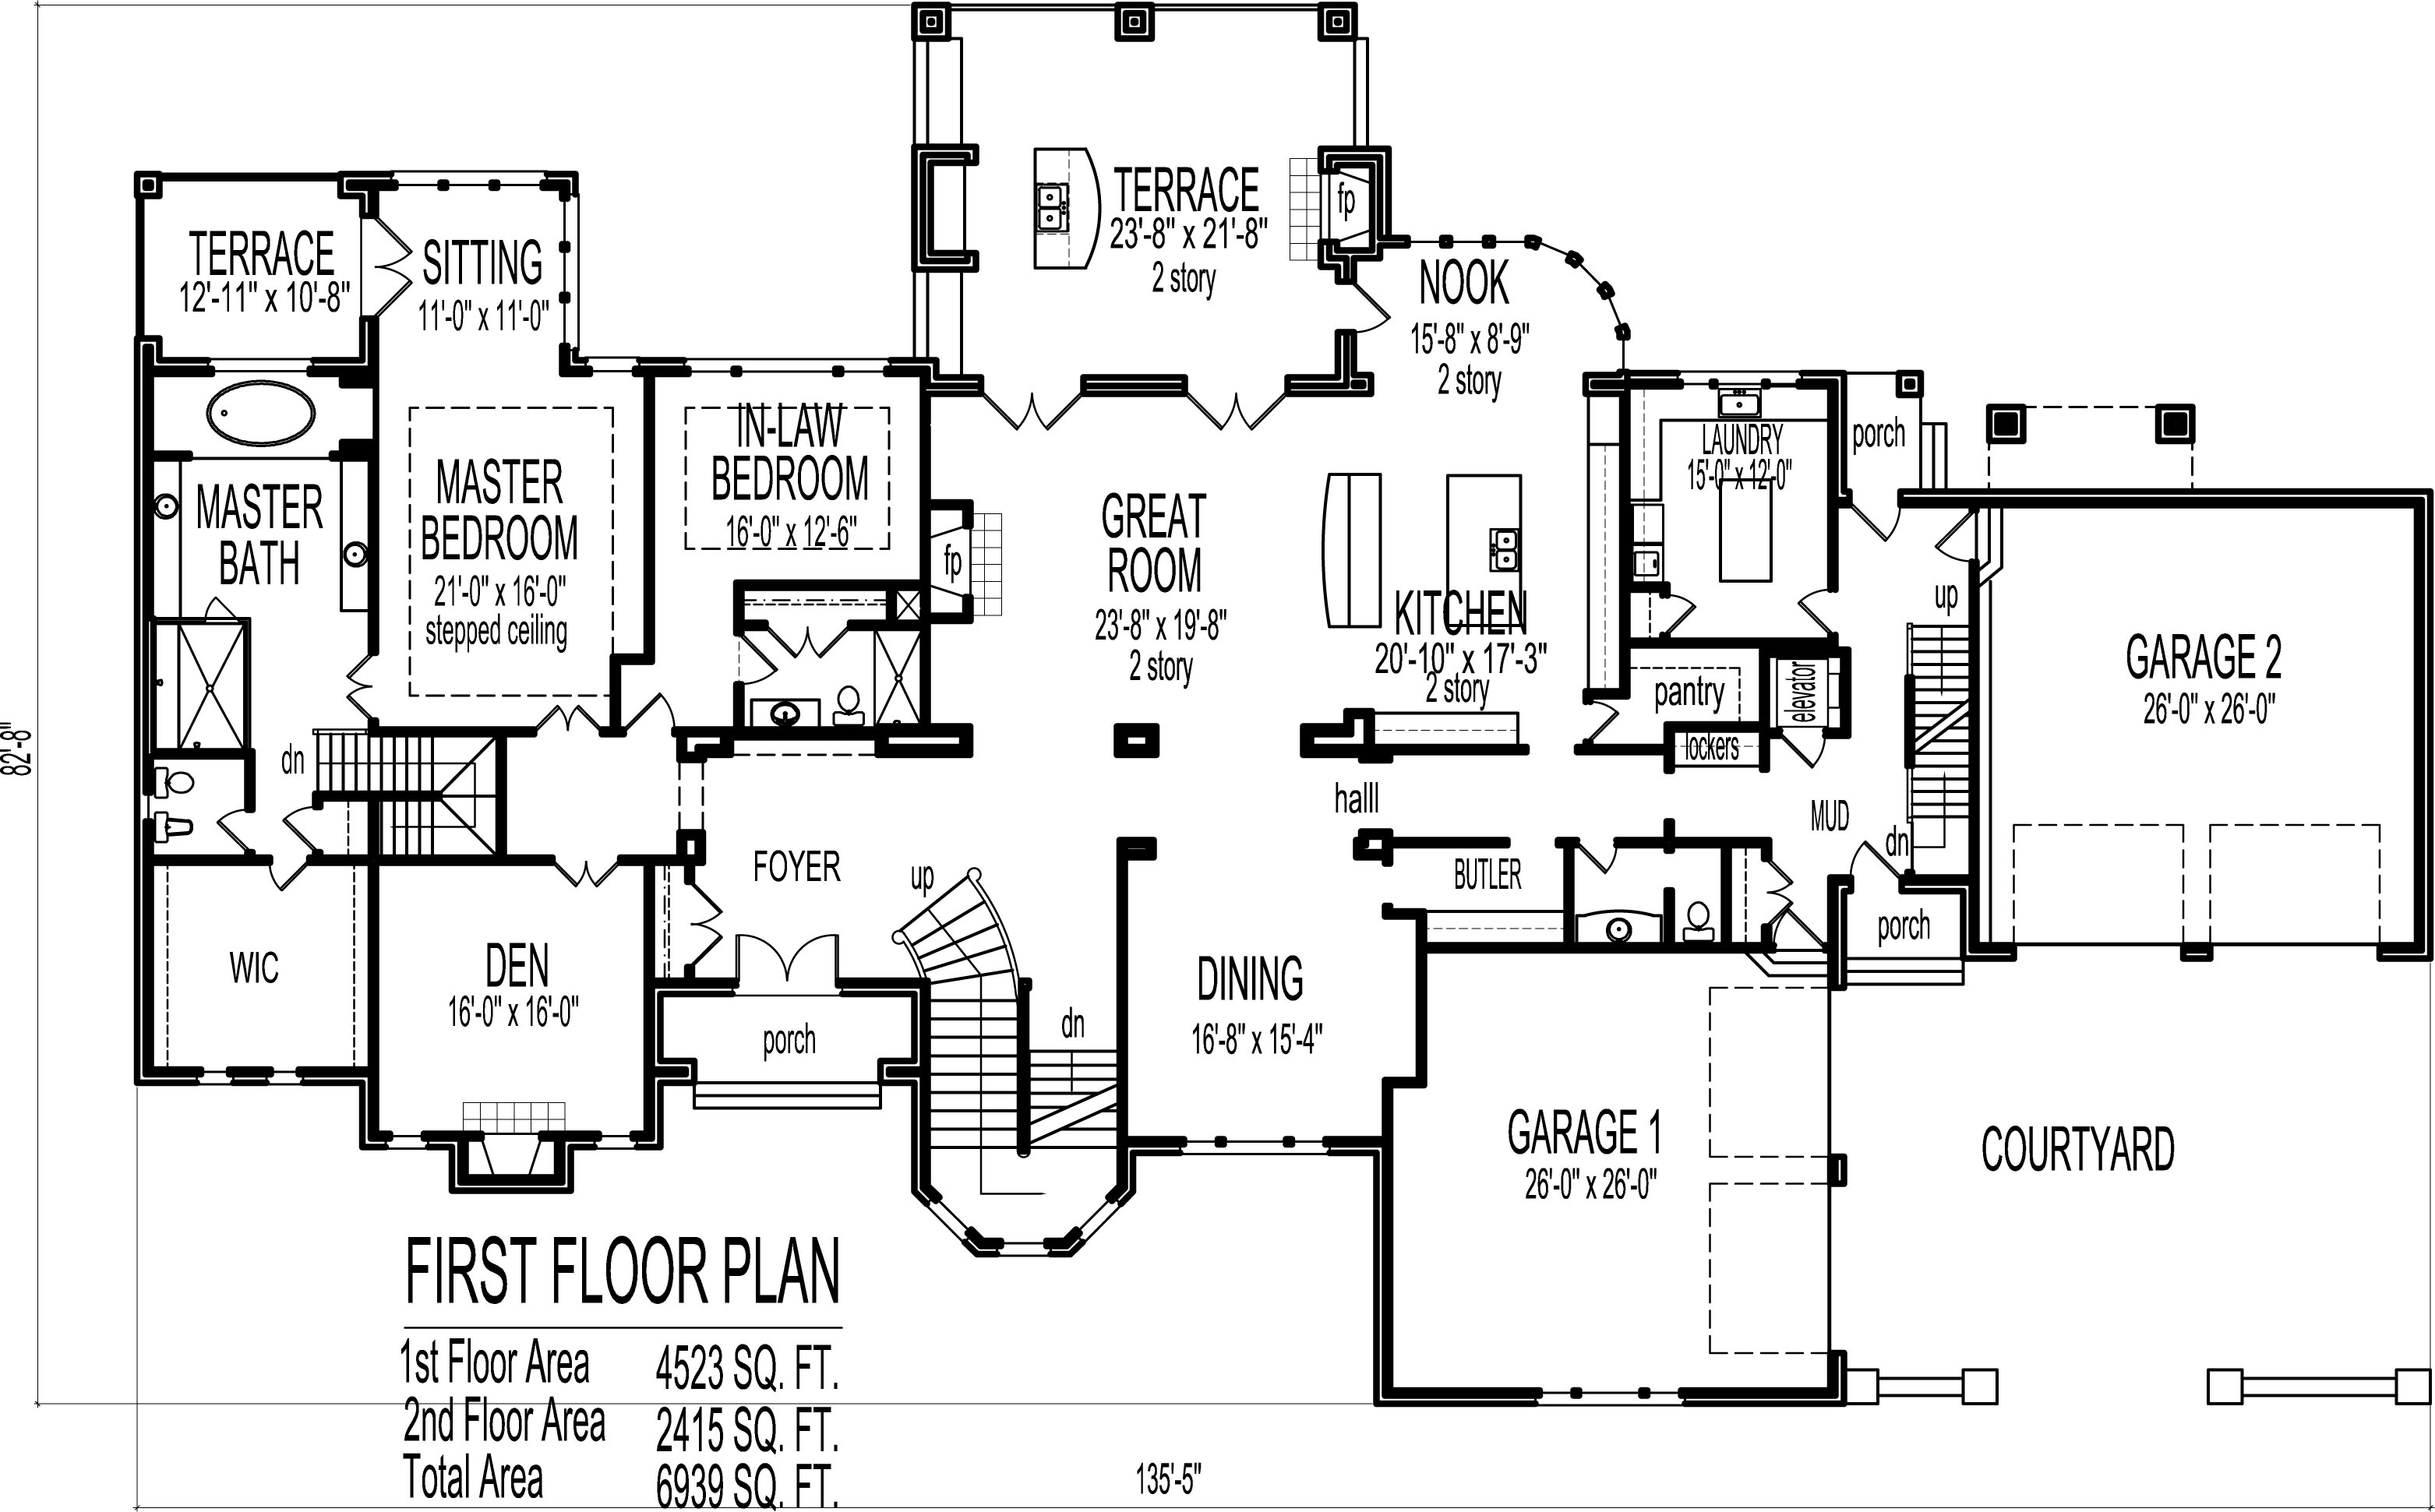 6 Bedroom House Plans Blueprints 6 Bedroom House Plans 3D